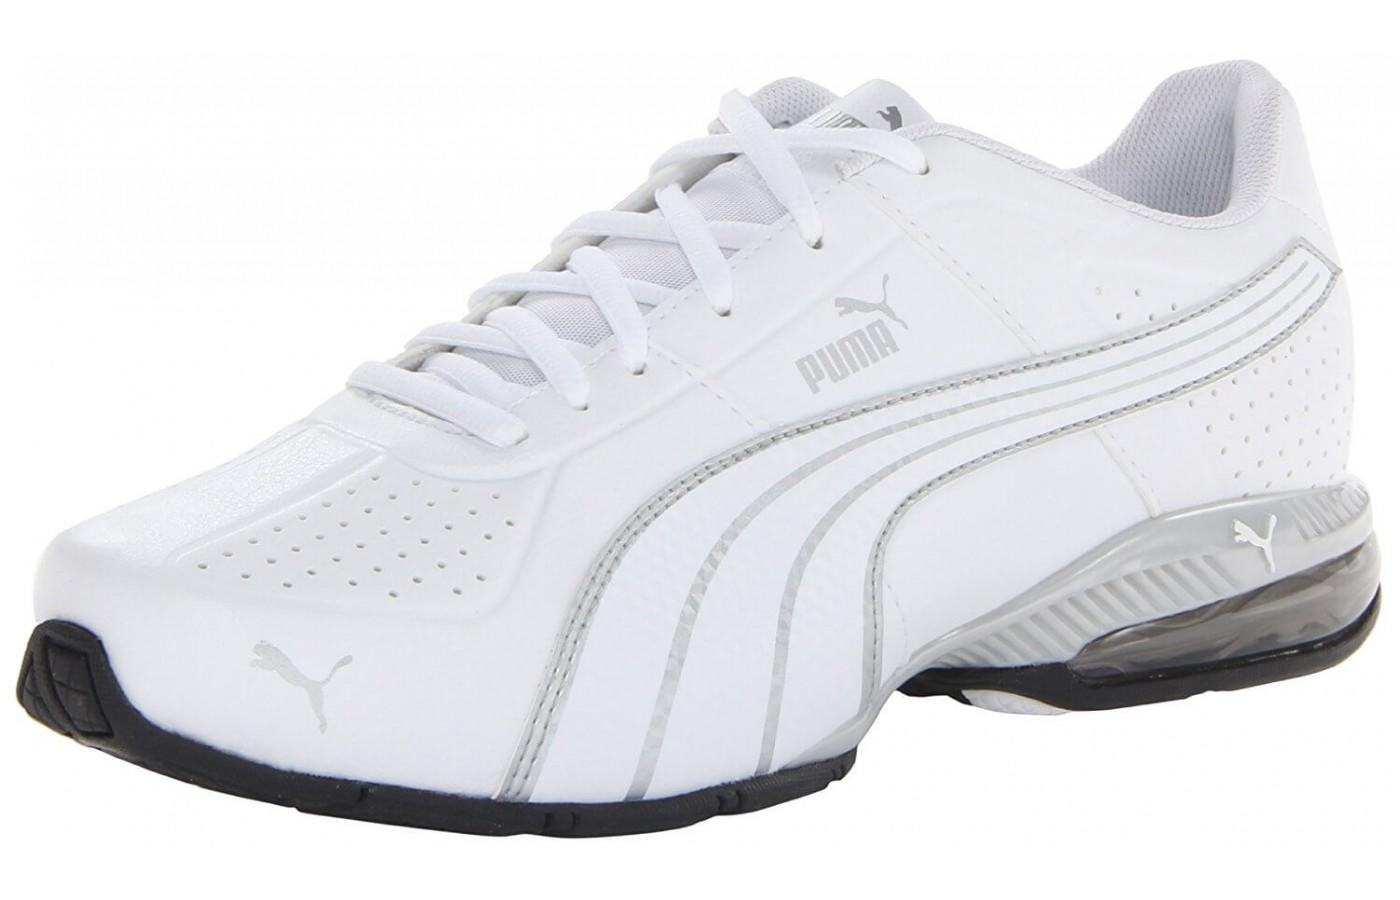 The Puma Cell Surin Cross Trainer is a great entry level shoe for the beginning runner.